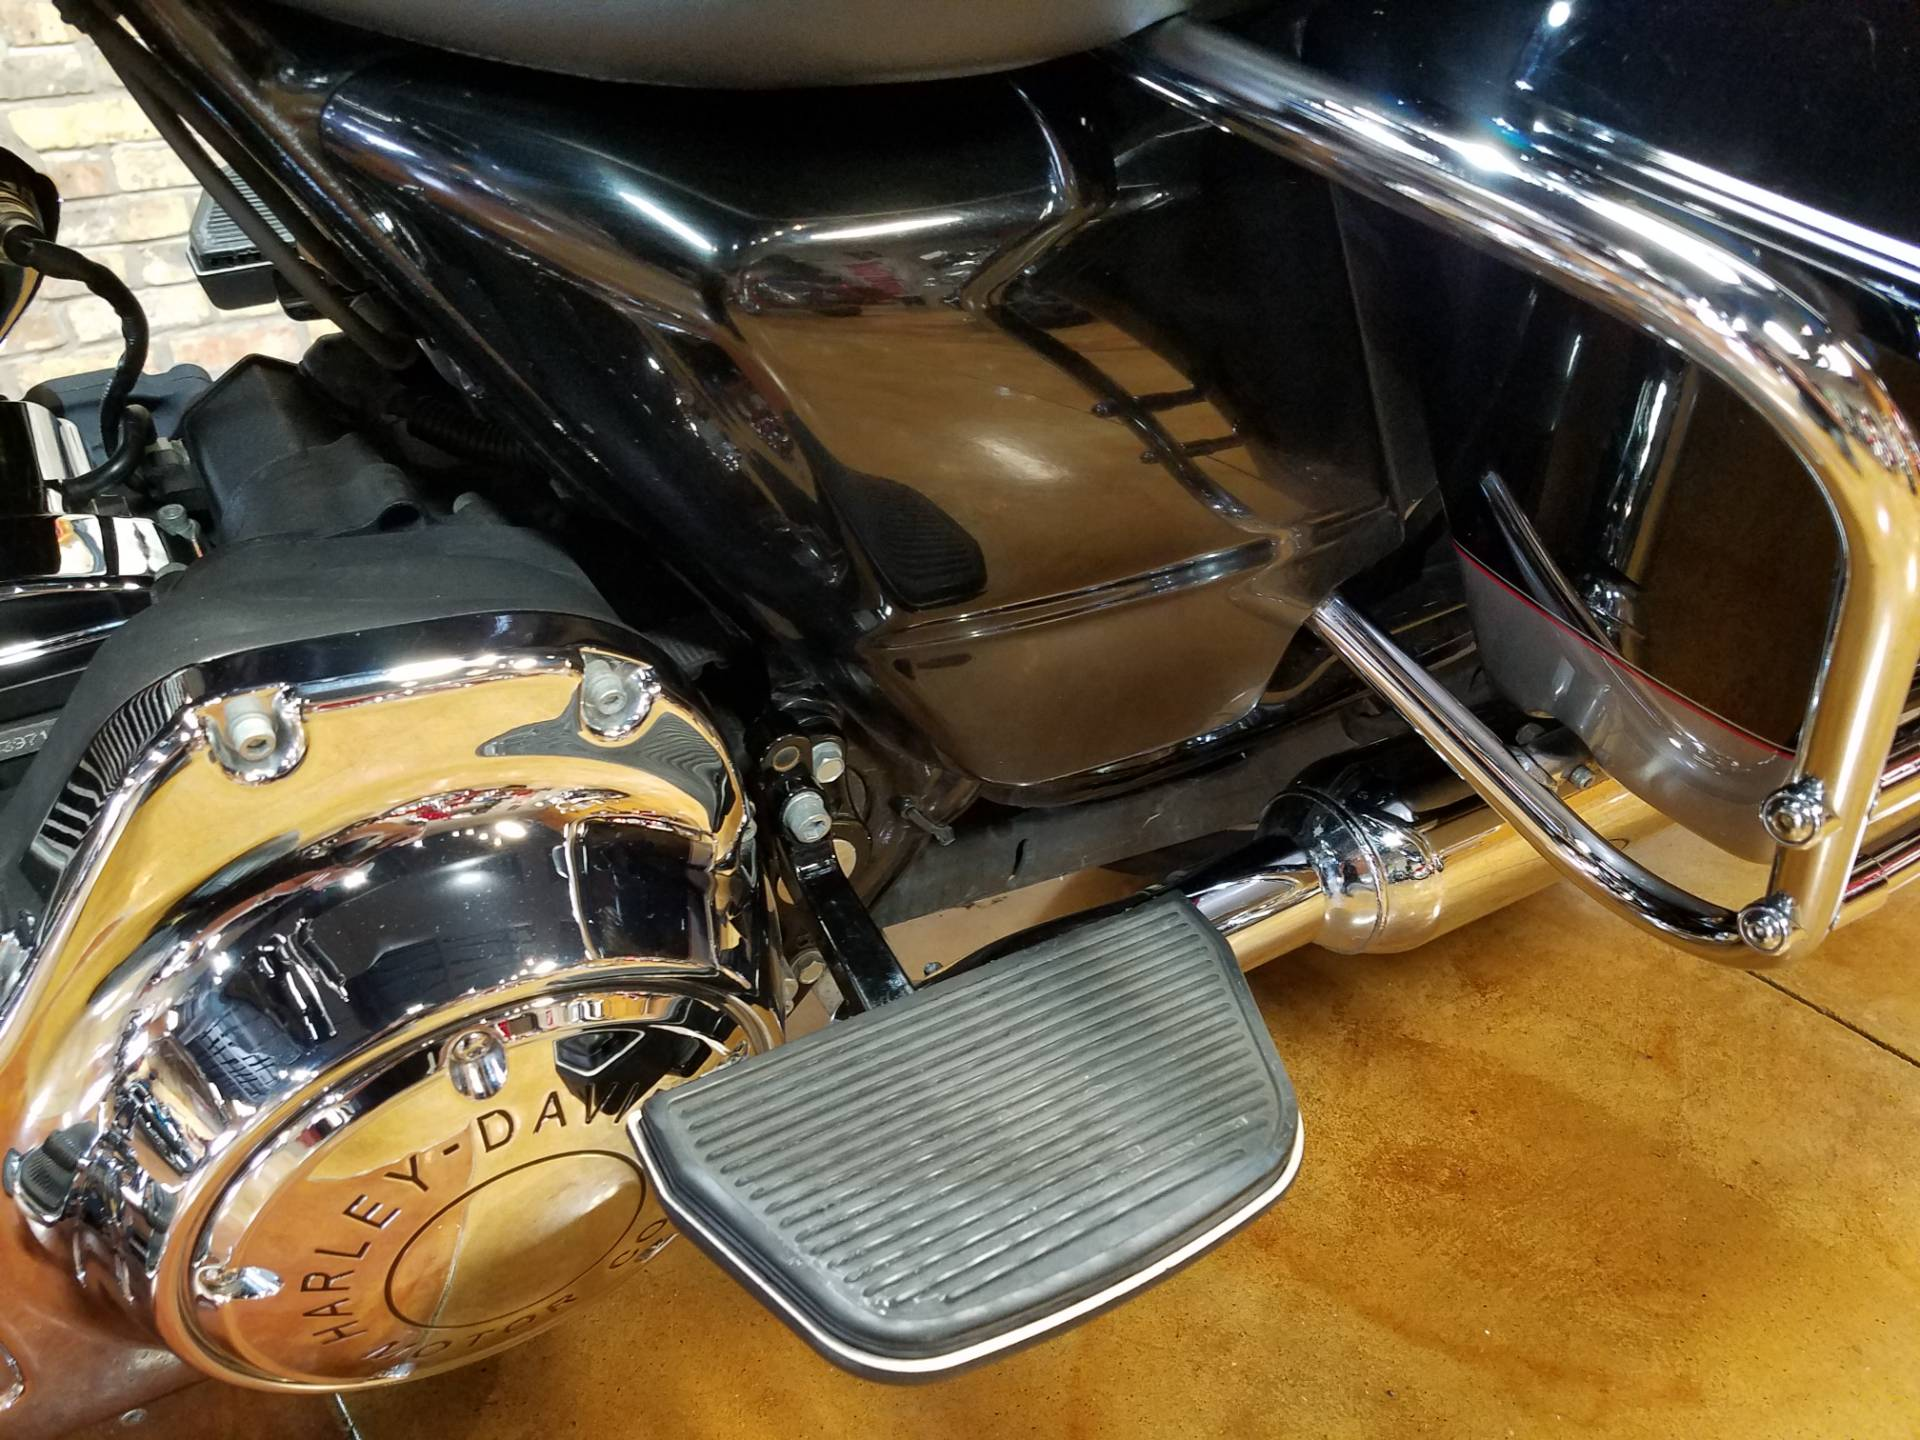 2009 Harley-Davidson Electra Glide® Classic in Big Bend, Wisconsin - Photo 43